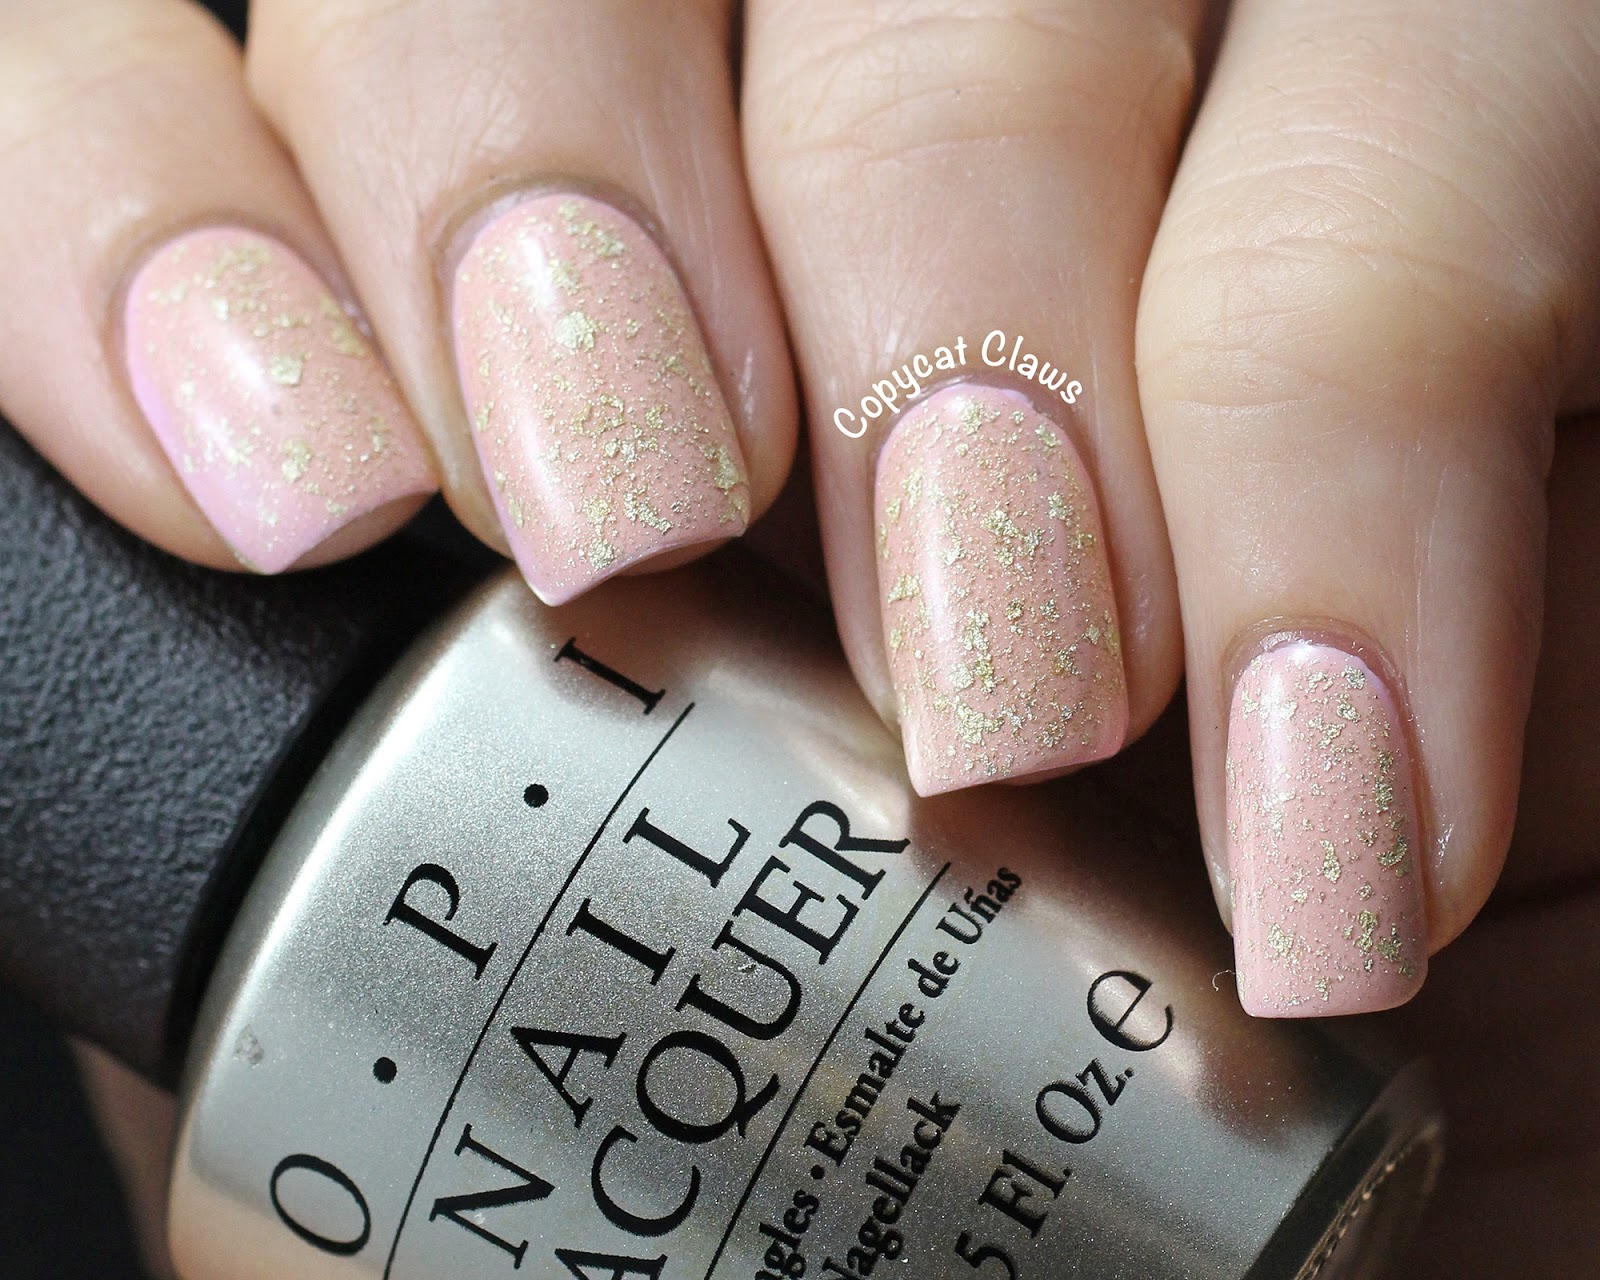 Copycat Claws Opi Mod About You Pure 18k White Gold And